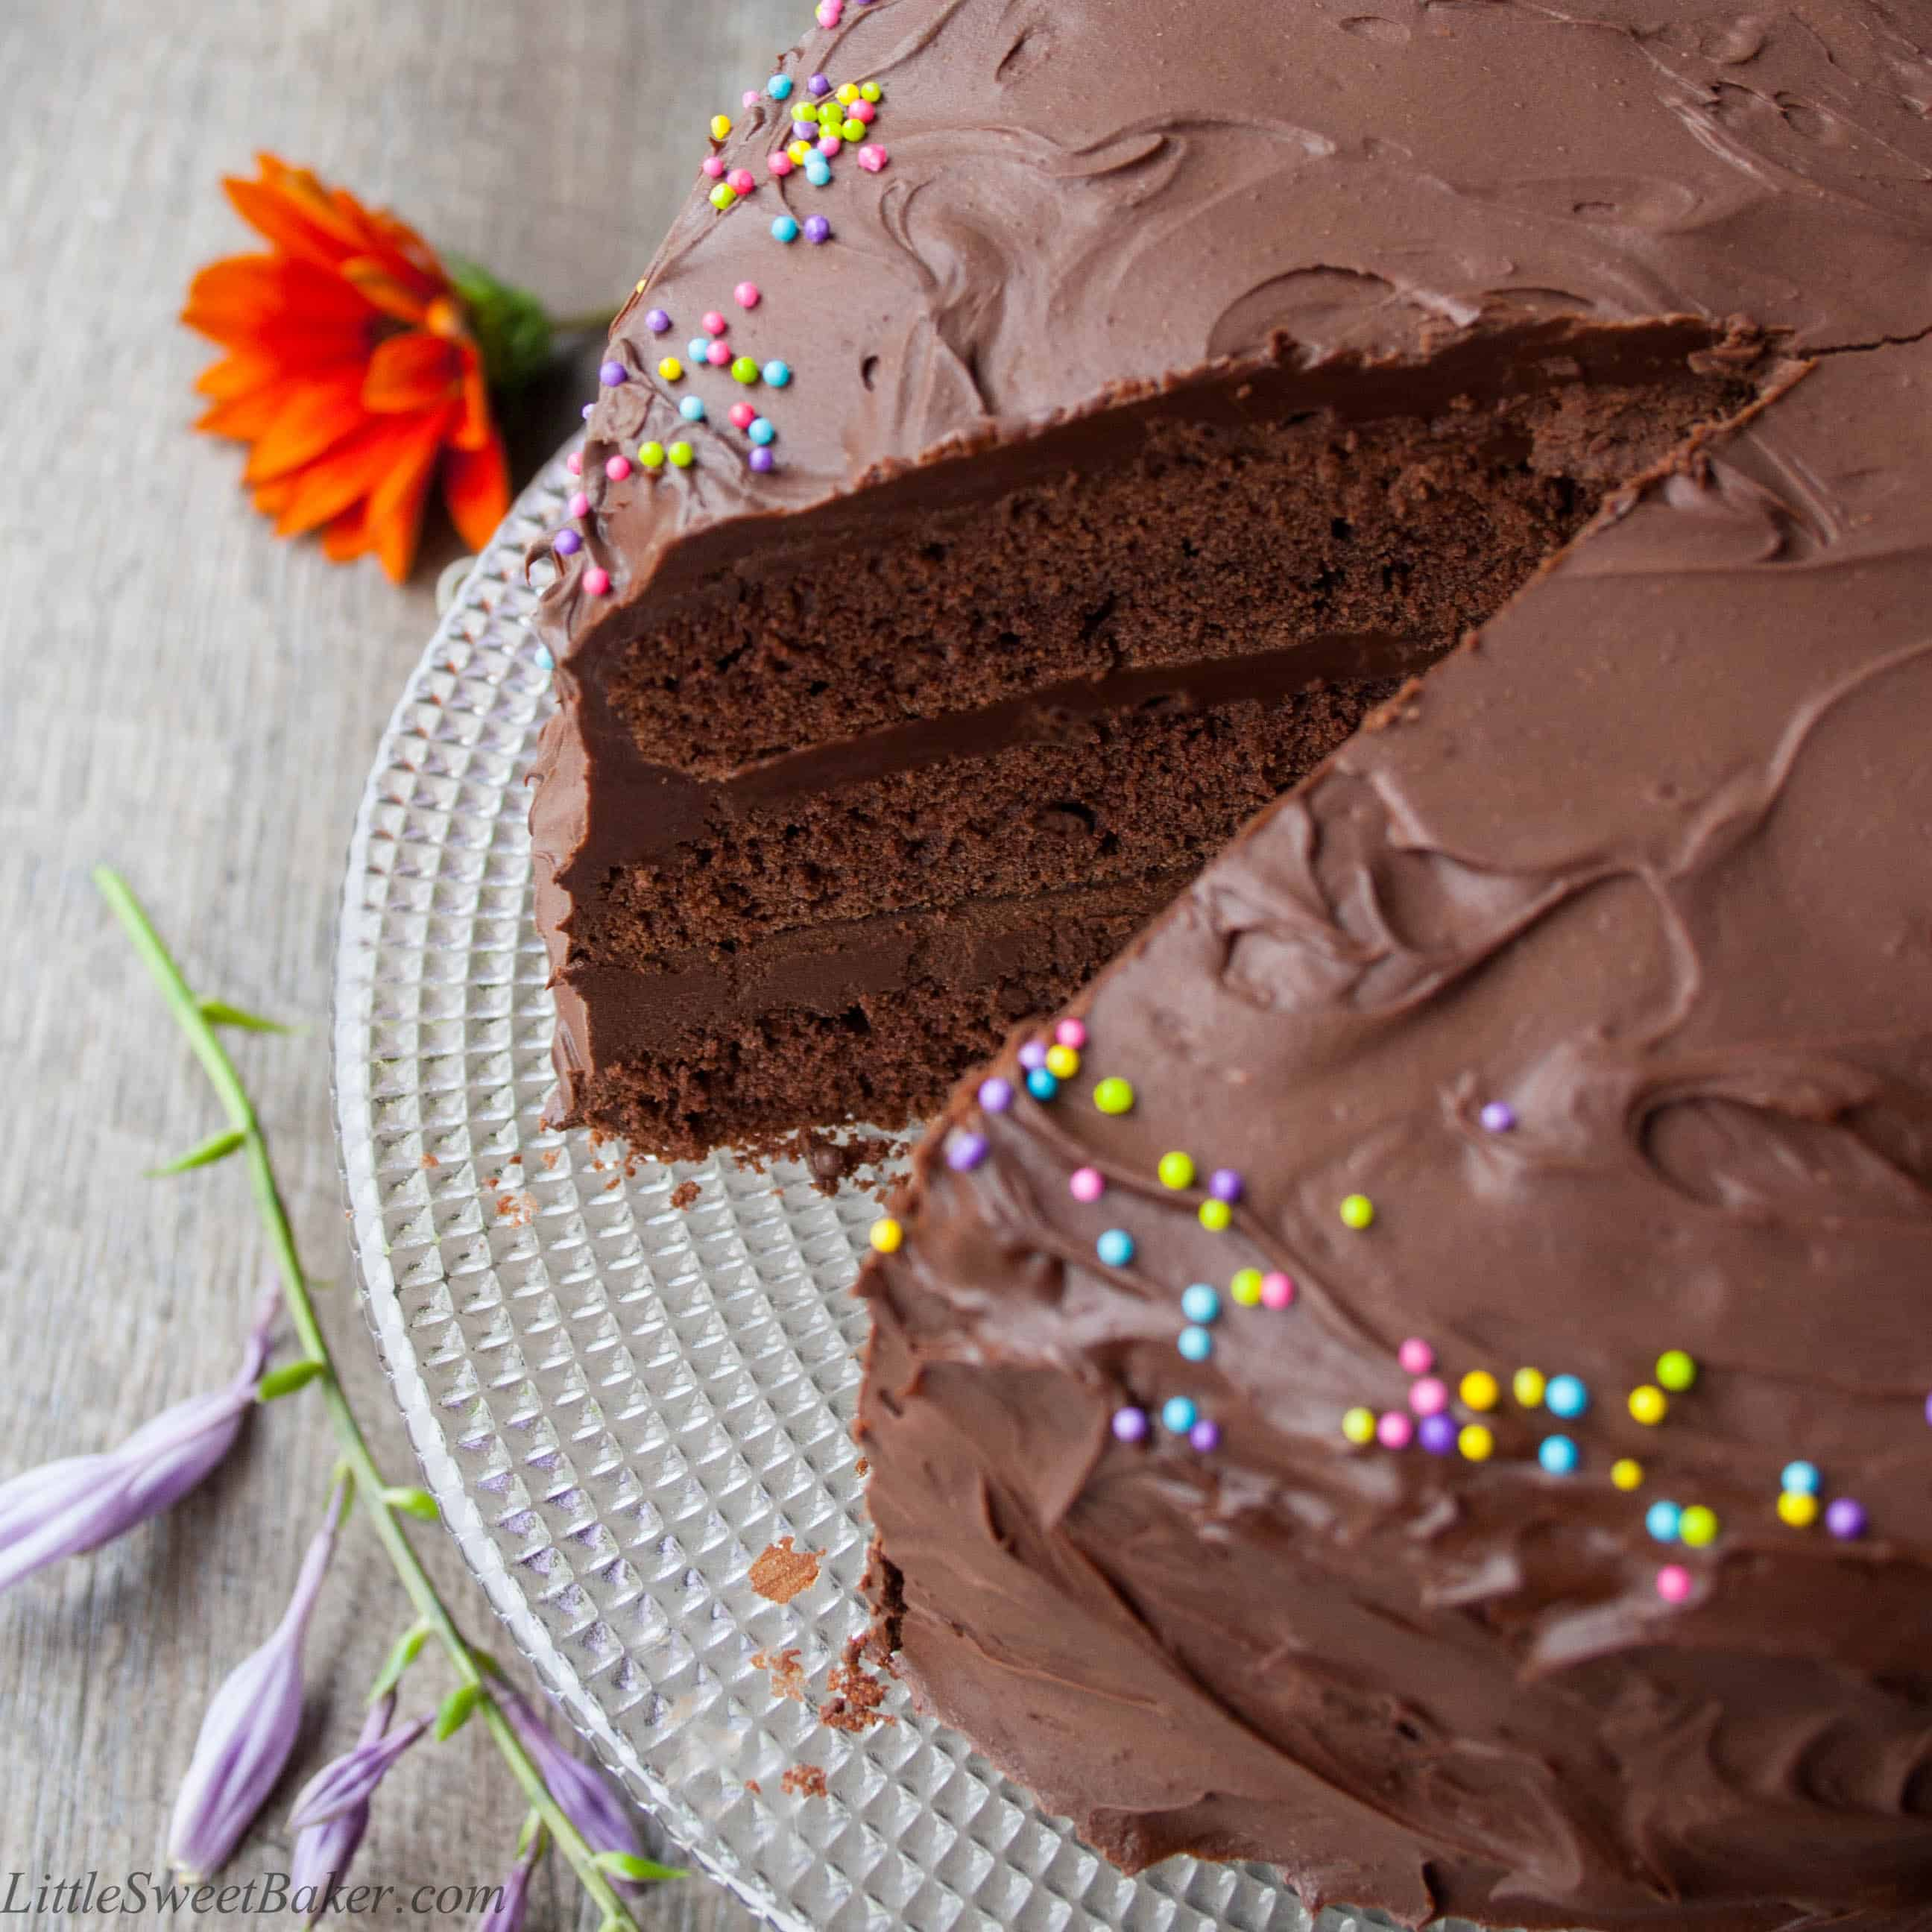 CHOCOLATE BIRTHDAY CAKE A Decadent 3 Layer Chocolate Cake Surrounded With The Most Luxurious